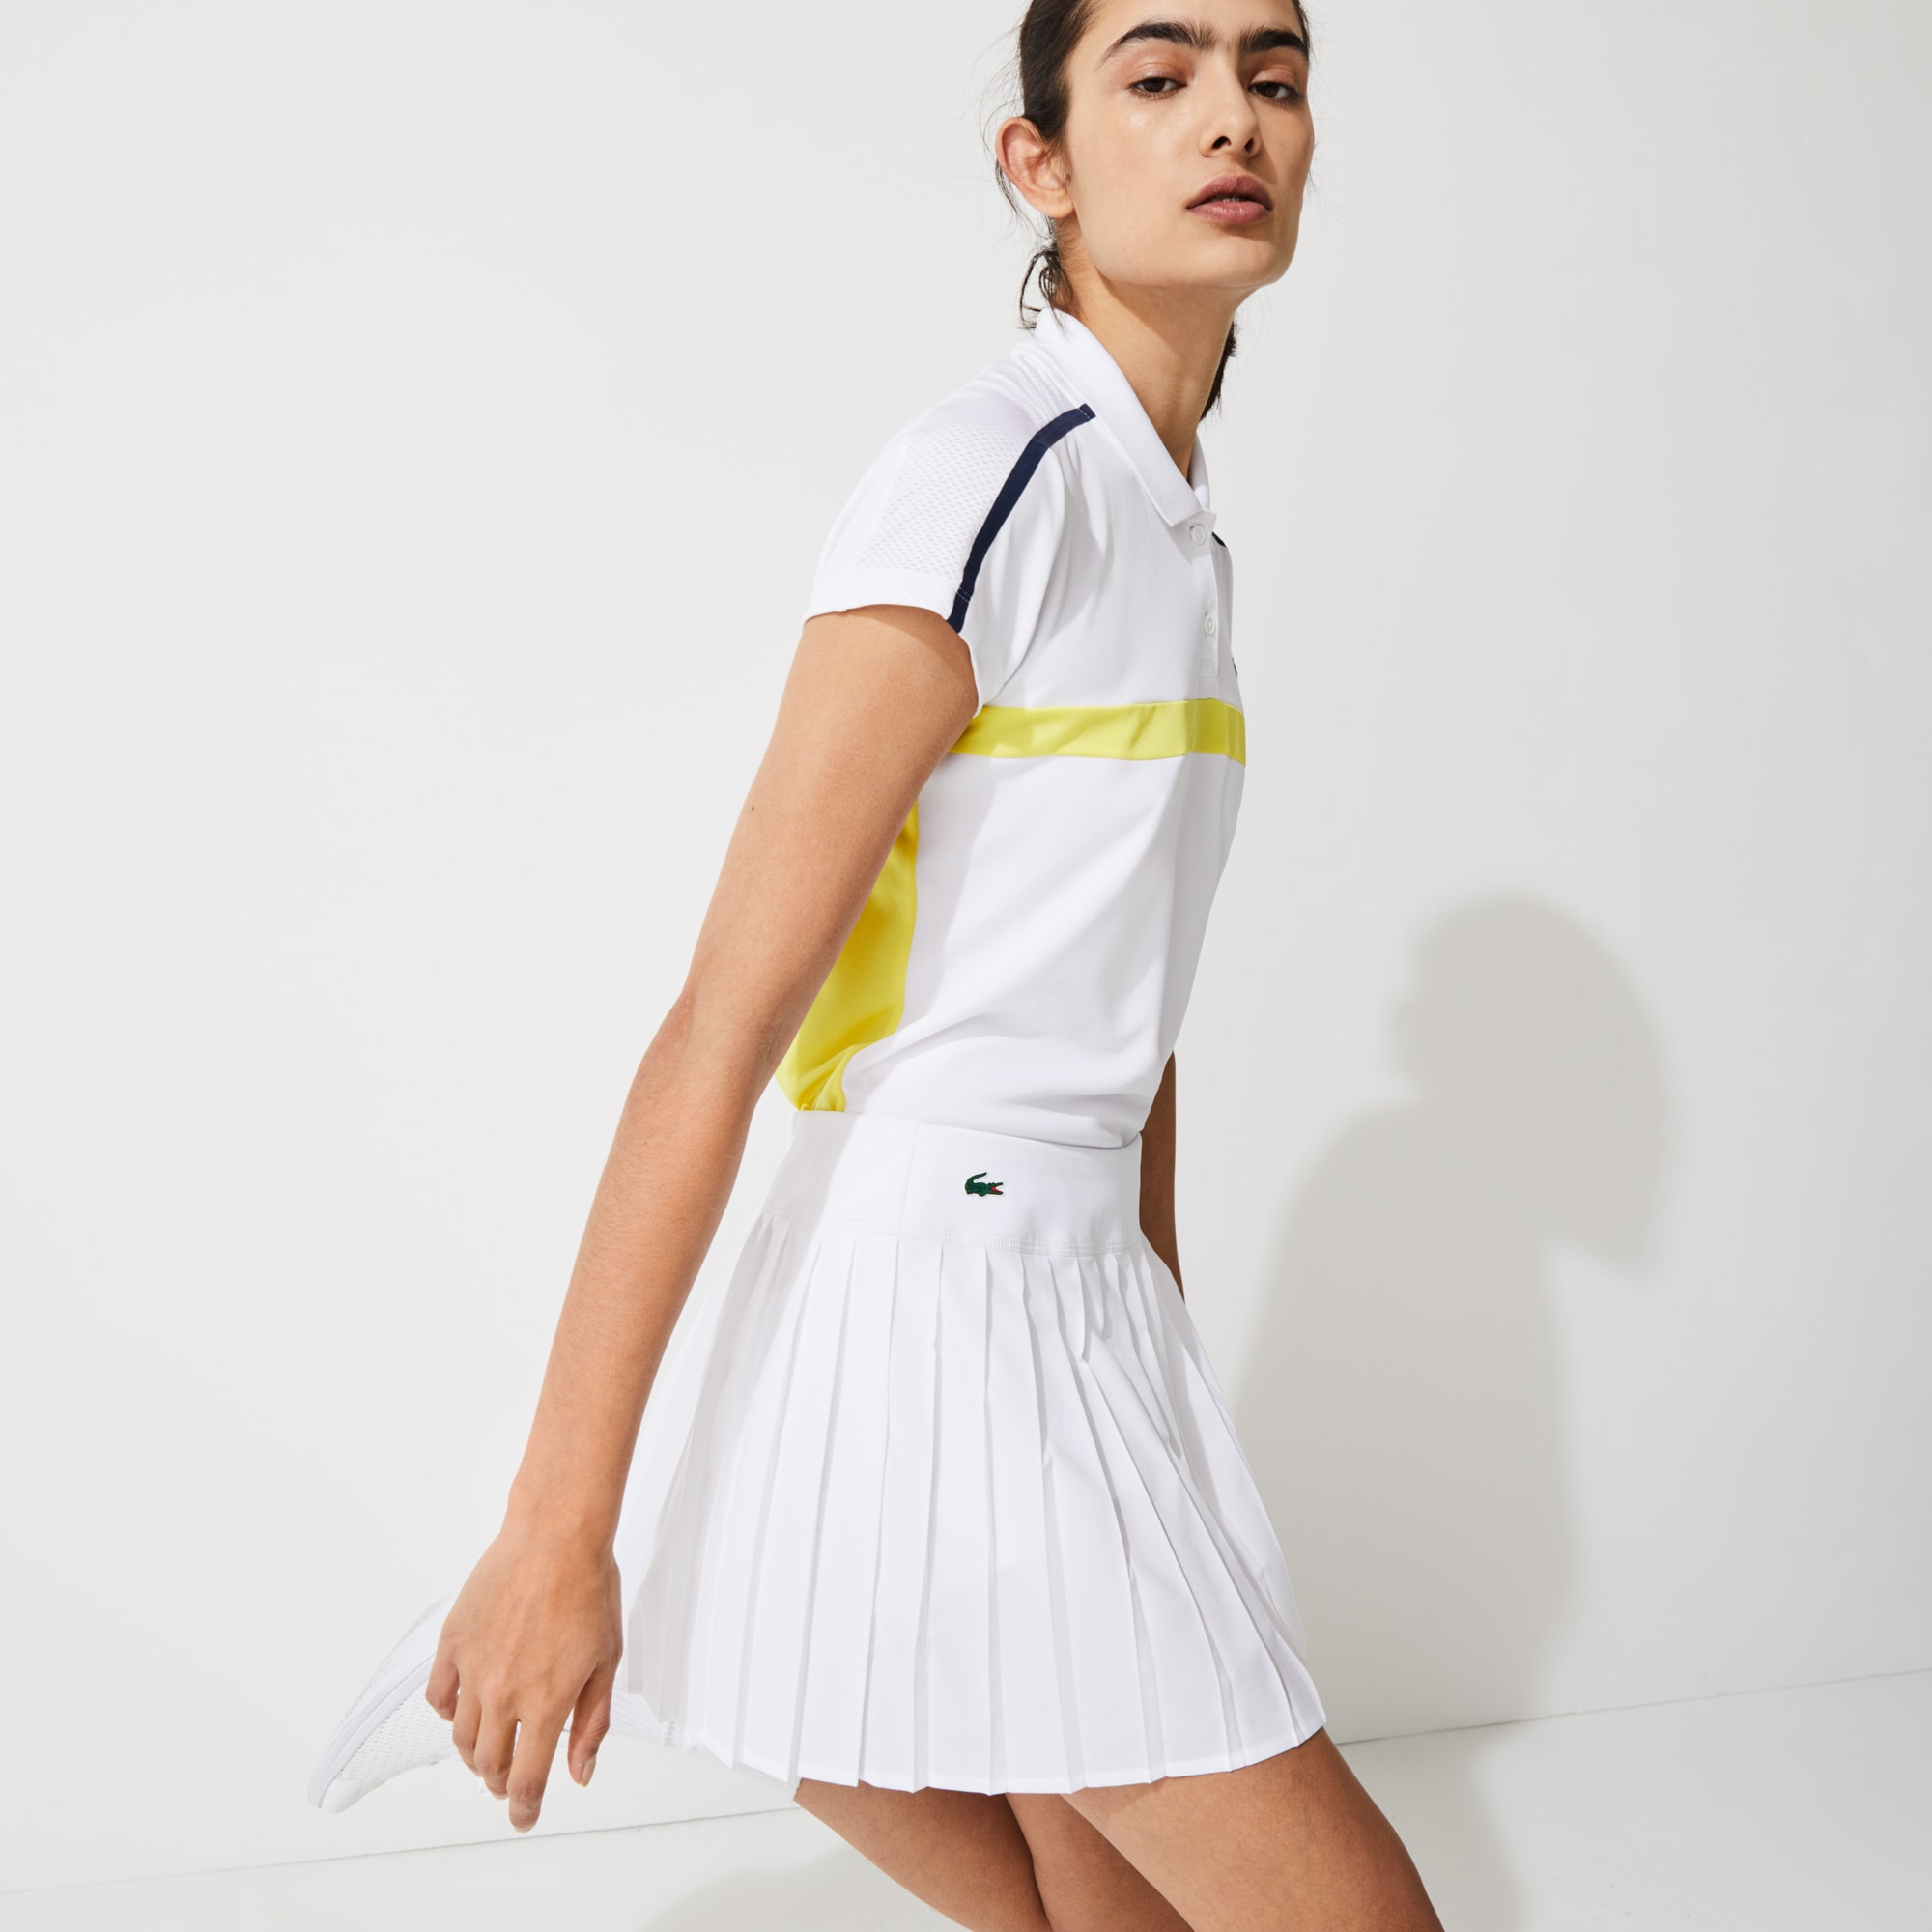 라코스테 테니스 스커트 Lacoste Women's SPORT Ultra Dry Pleated Tennis Skirt,White Z92